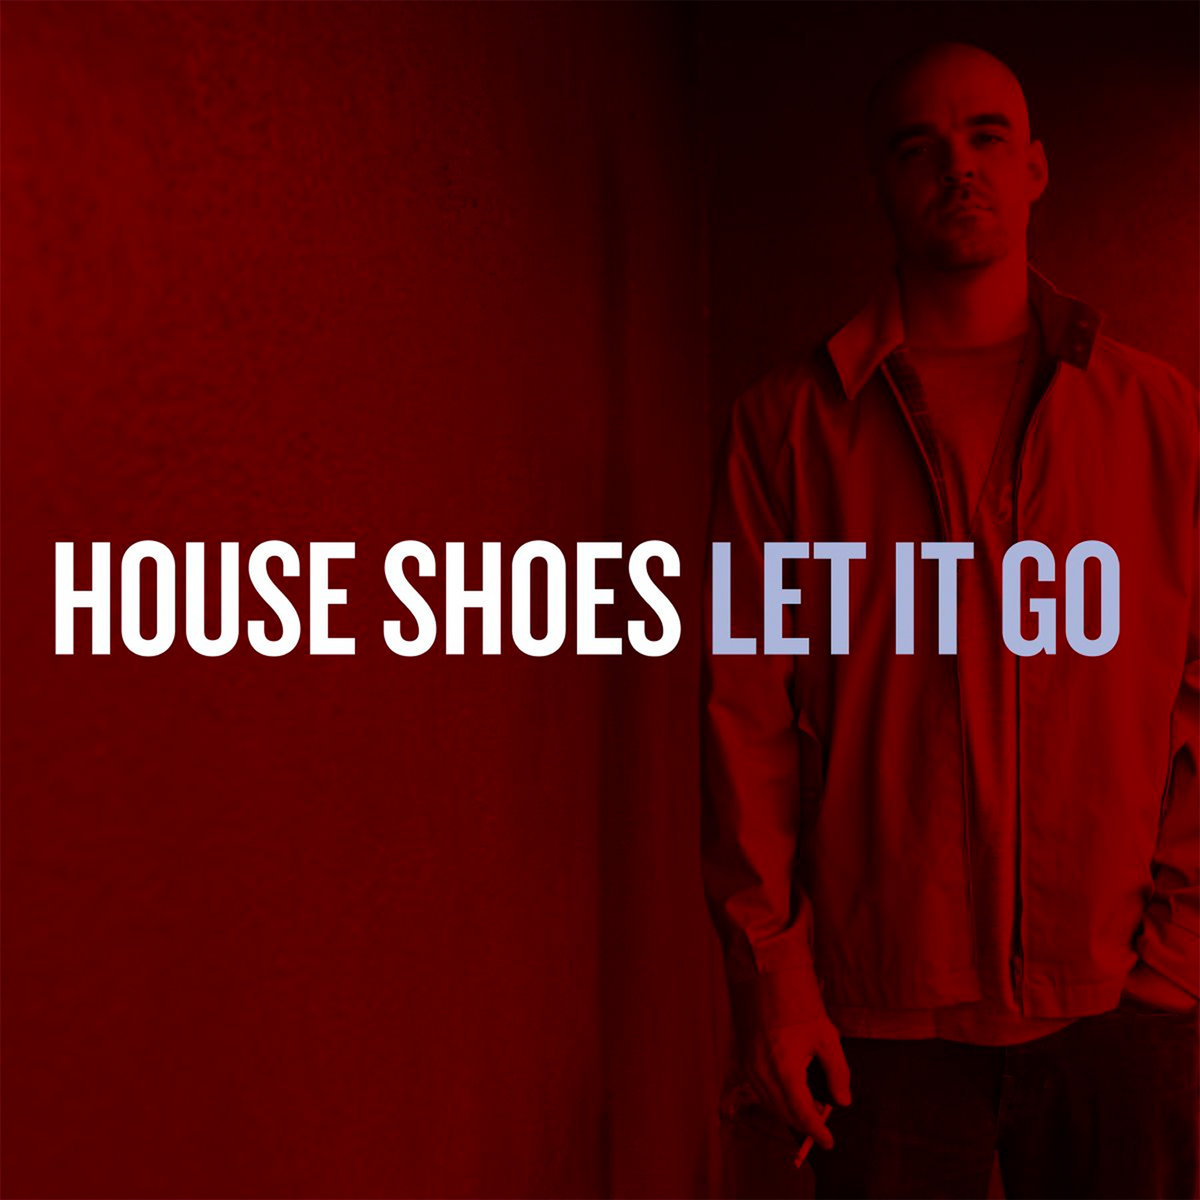 Let_it_go_house_shoes